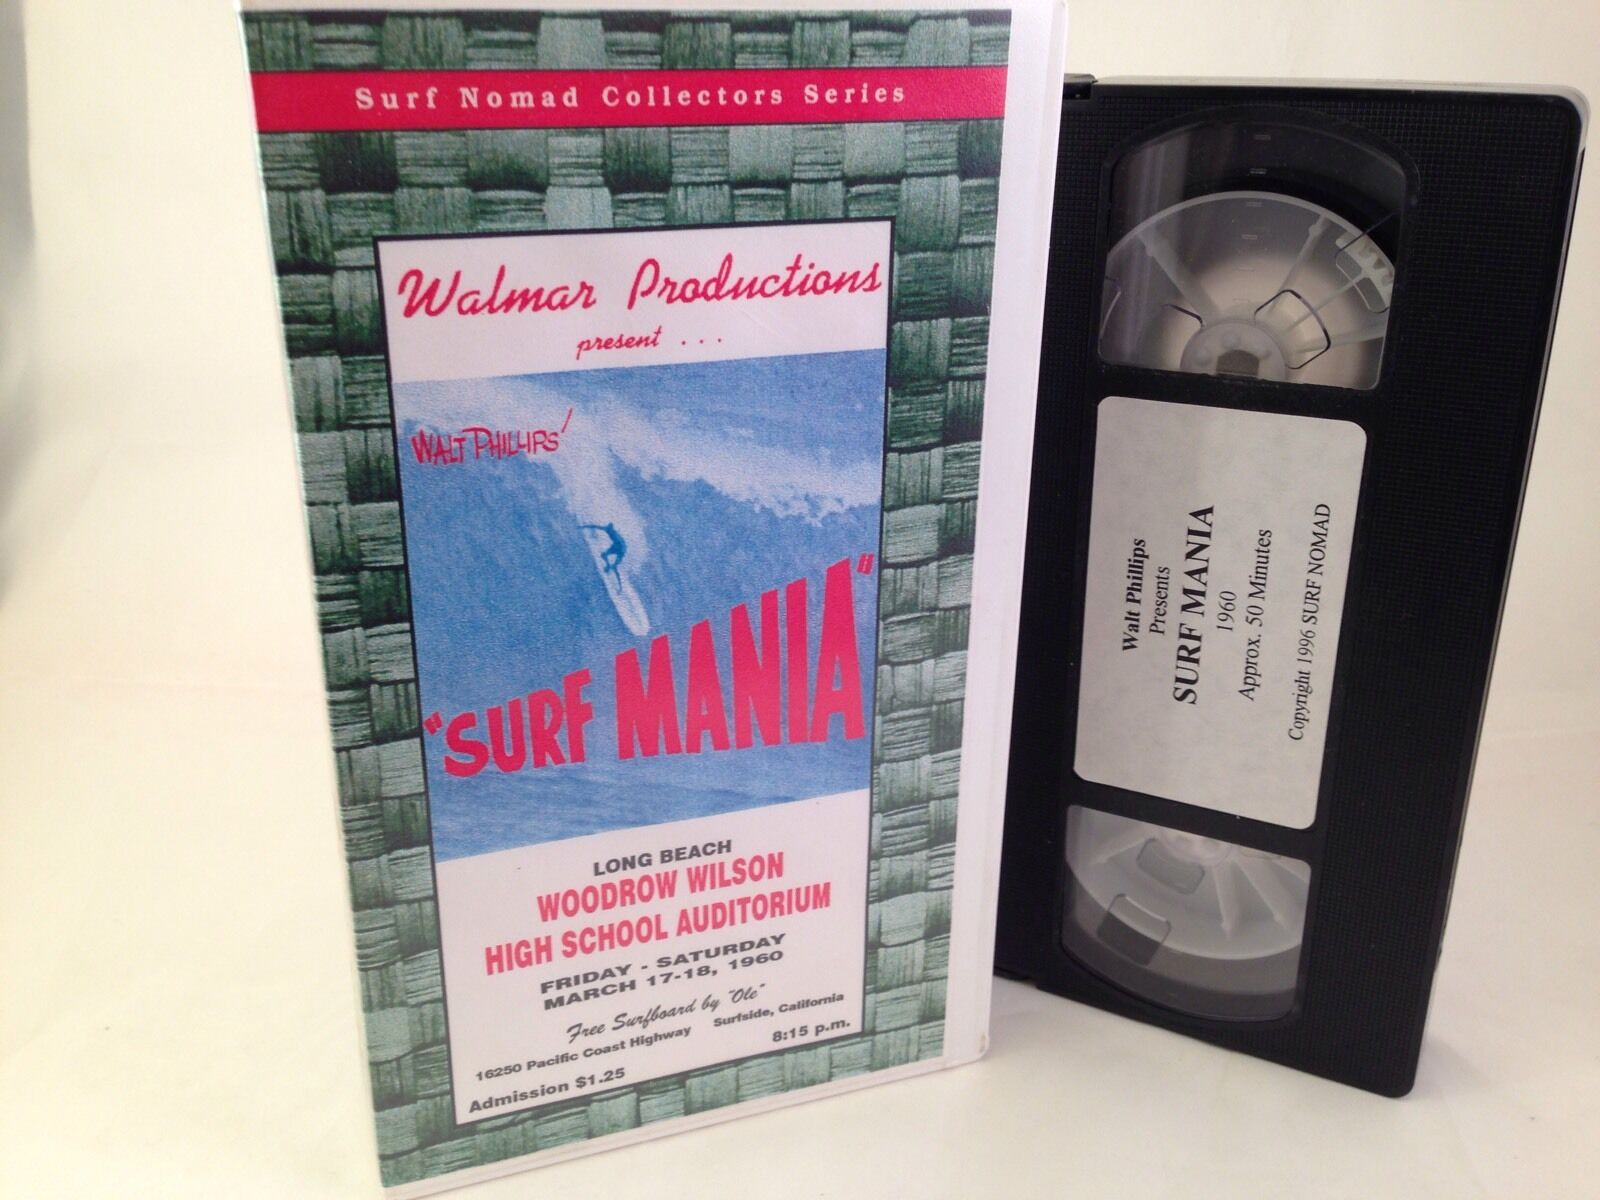 Vtg Surfing 'Surf Mania' 1960 Walt Phillips Video VHS Movie - Super RARE  WALMAR